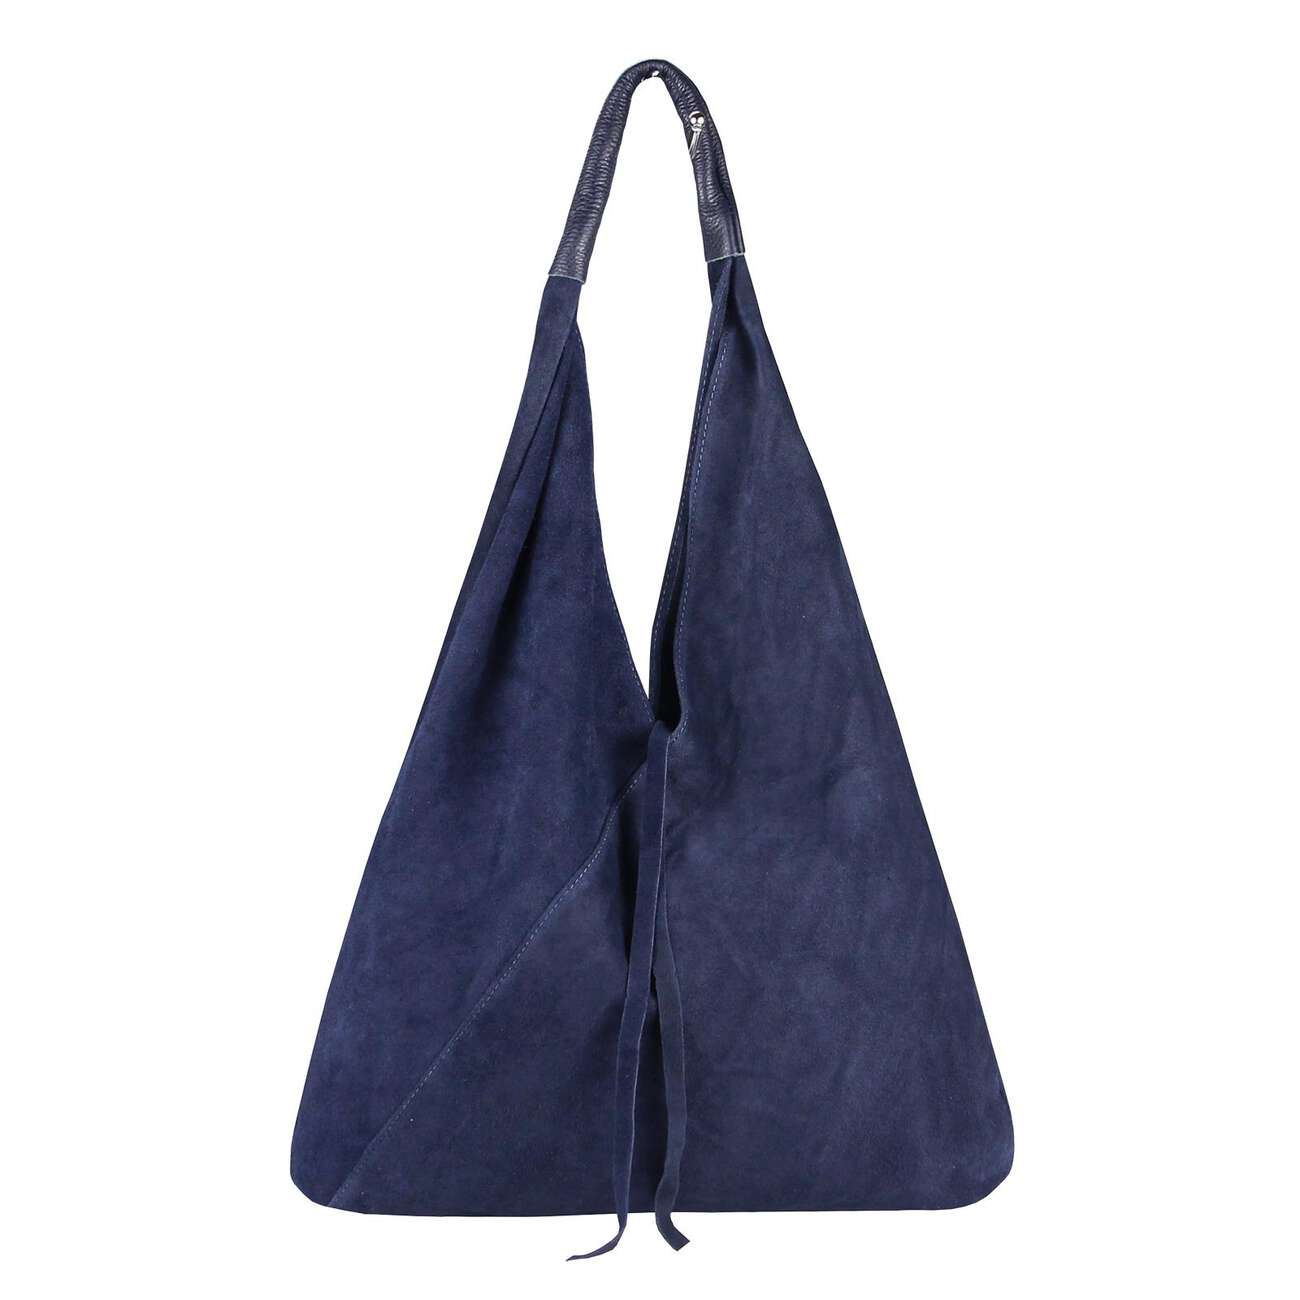 d5558bed8f082 OBC Made in Italy Damen XXL Leder Tasche Handtasche Wildleder Shopper  Schultertasche Hobo-Bag Umhängetasche Ledertasche Beuteltasche Velourleder  DIN-A4